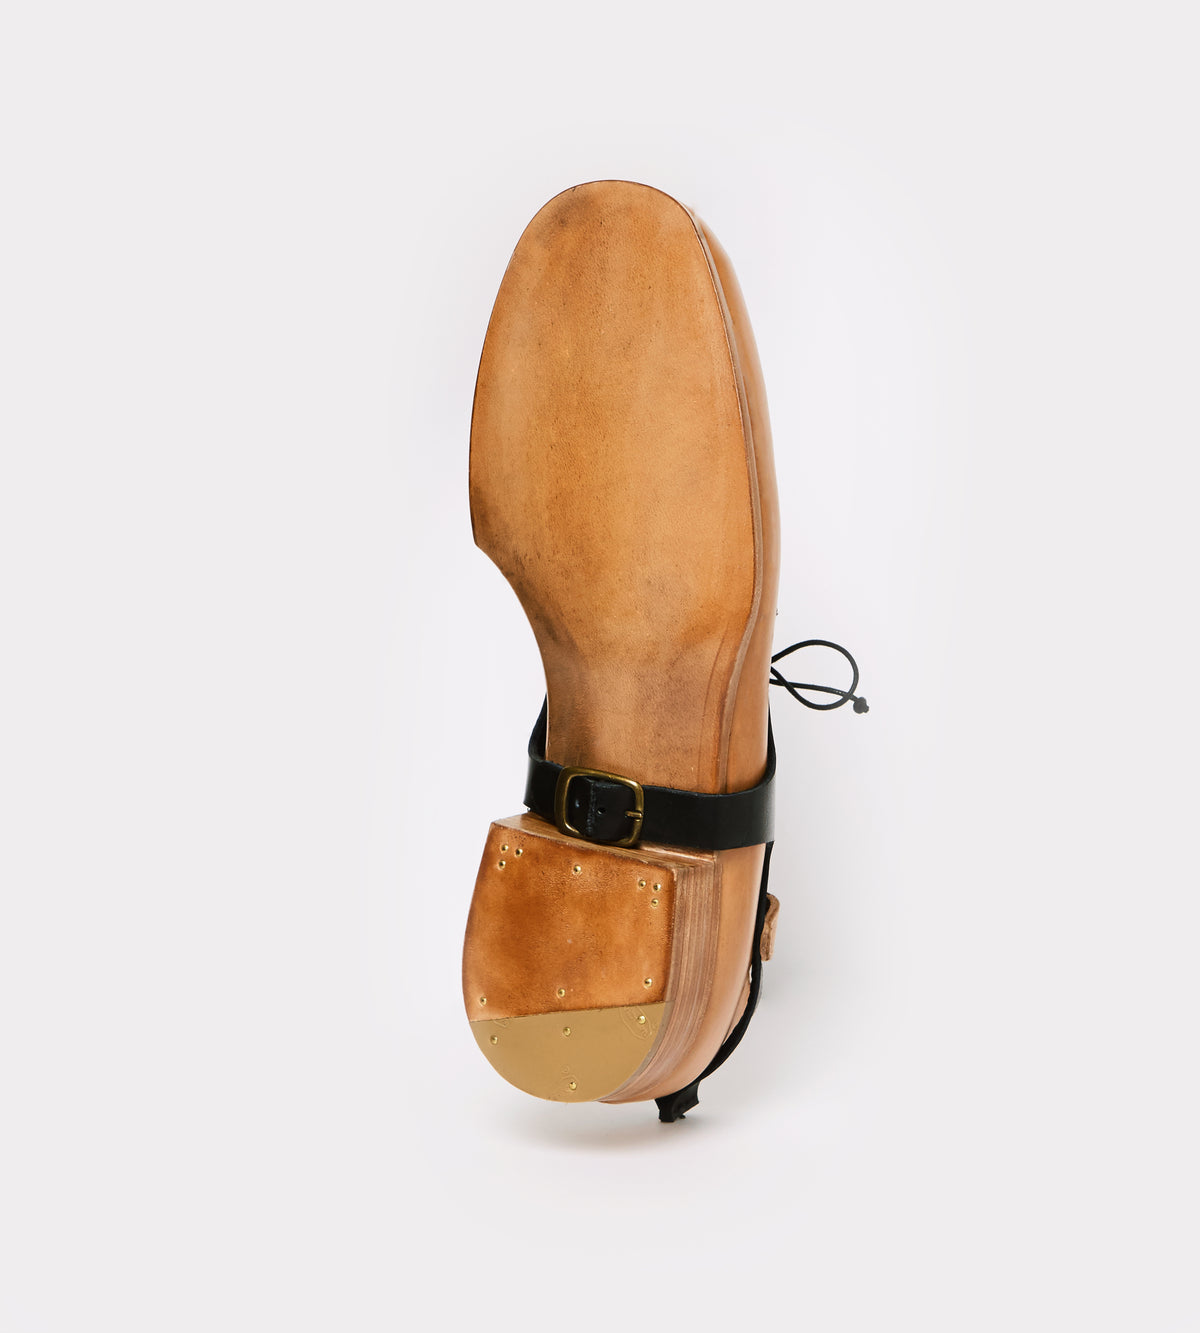 Black-natural calf leather derby botton view